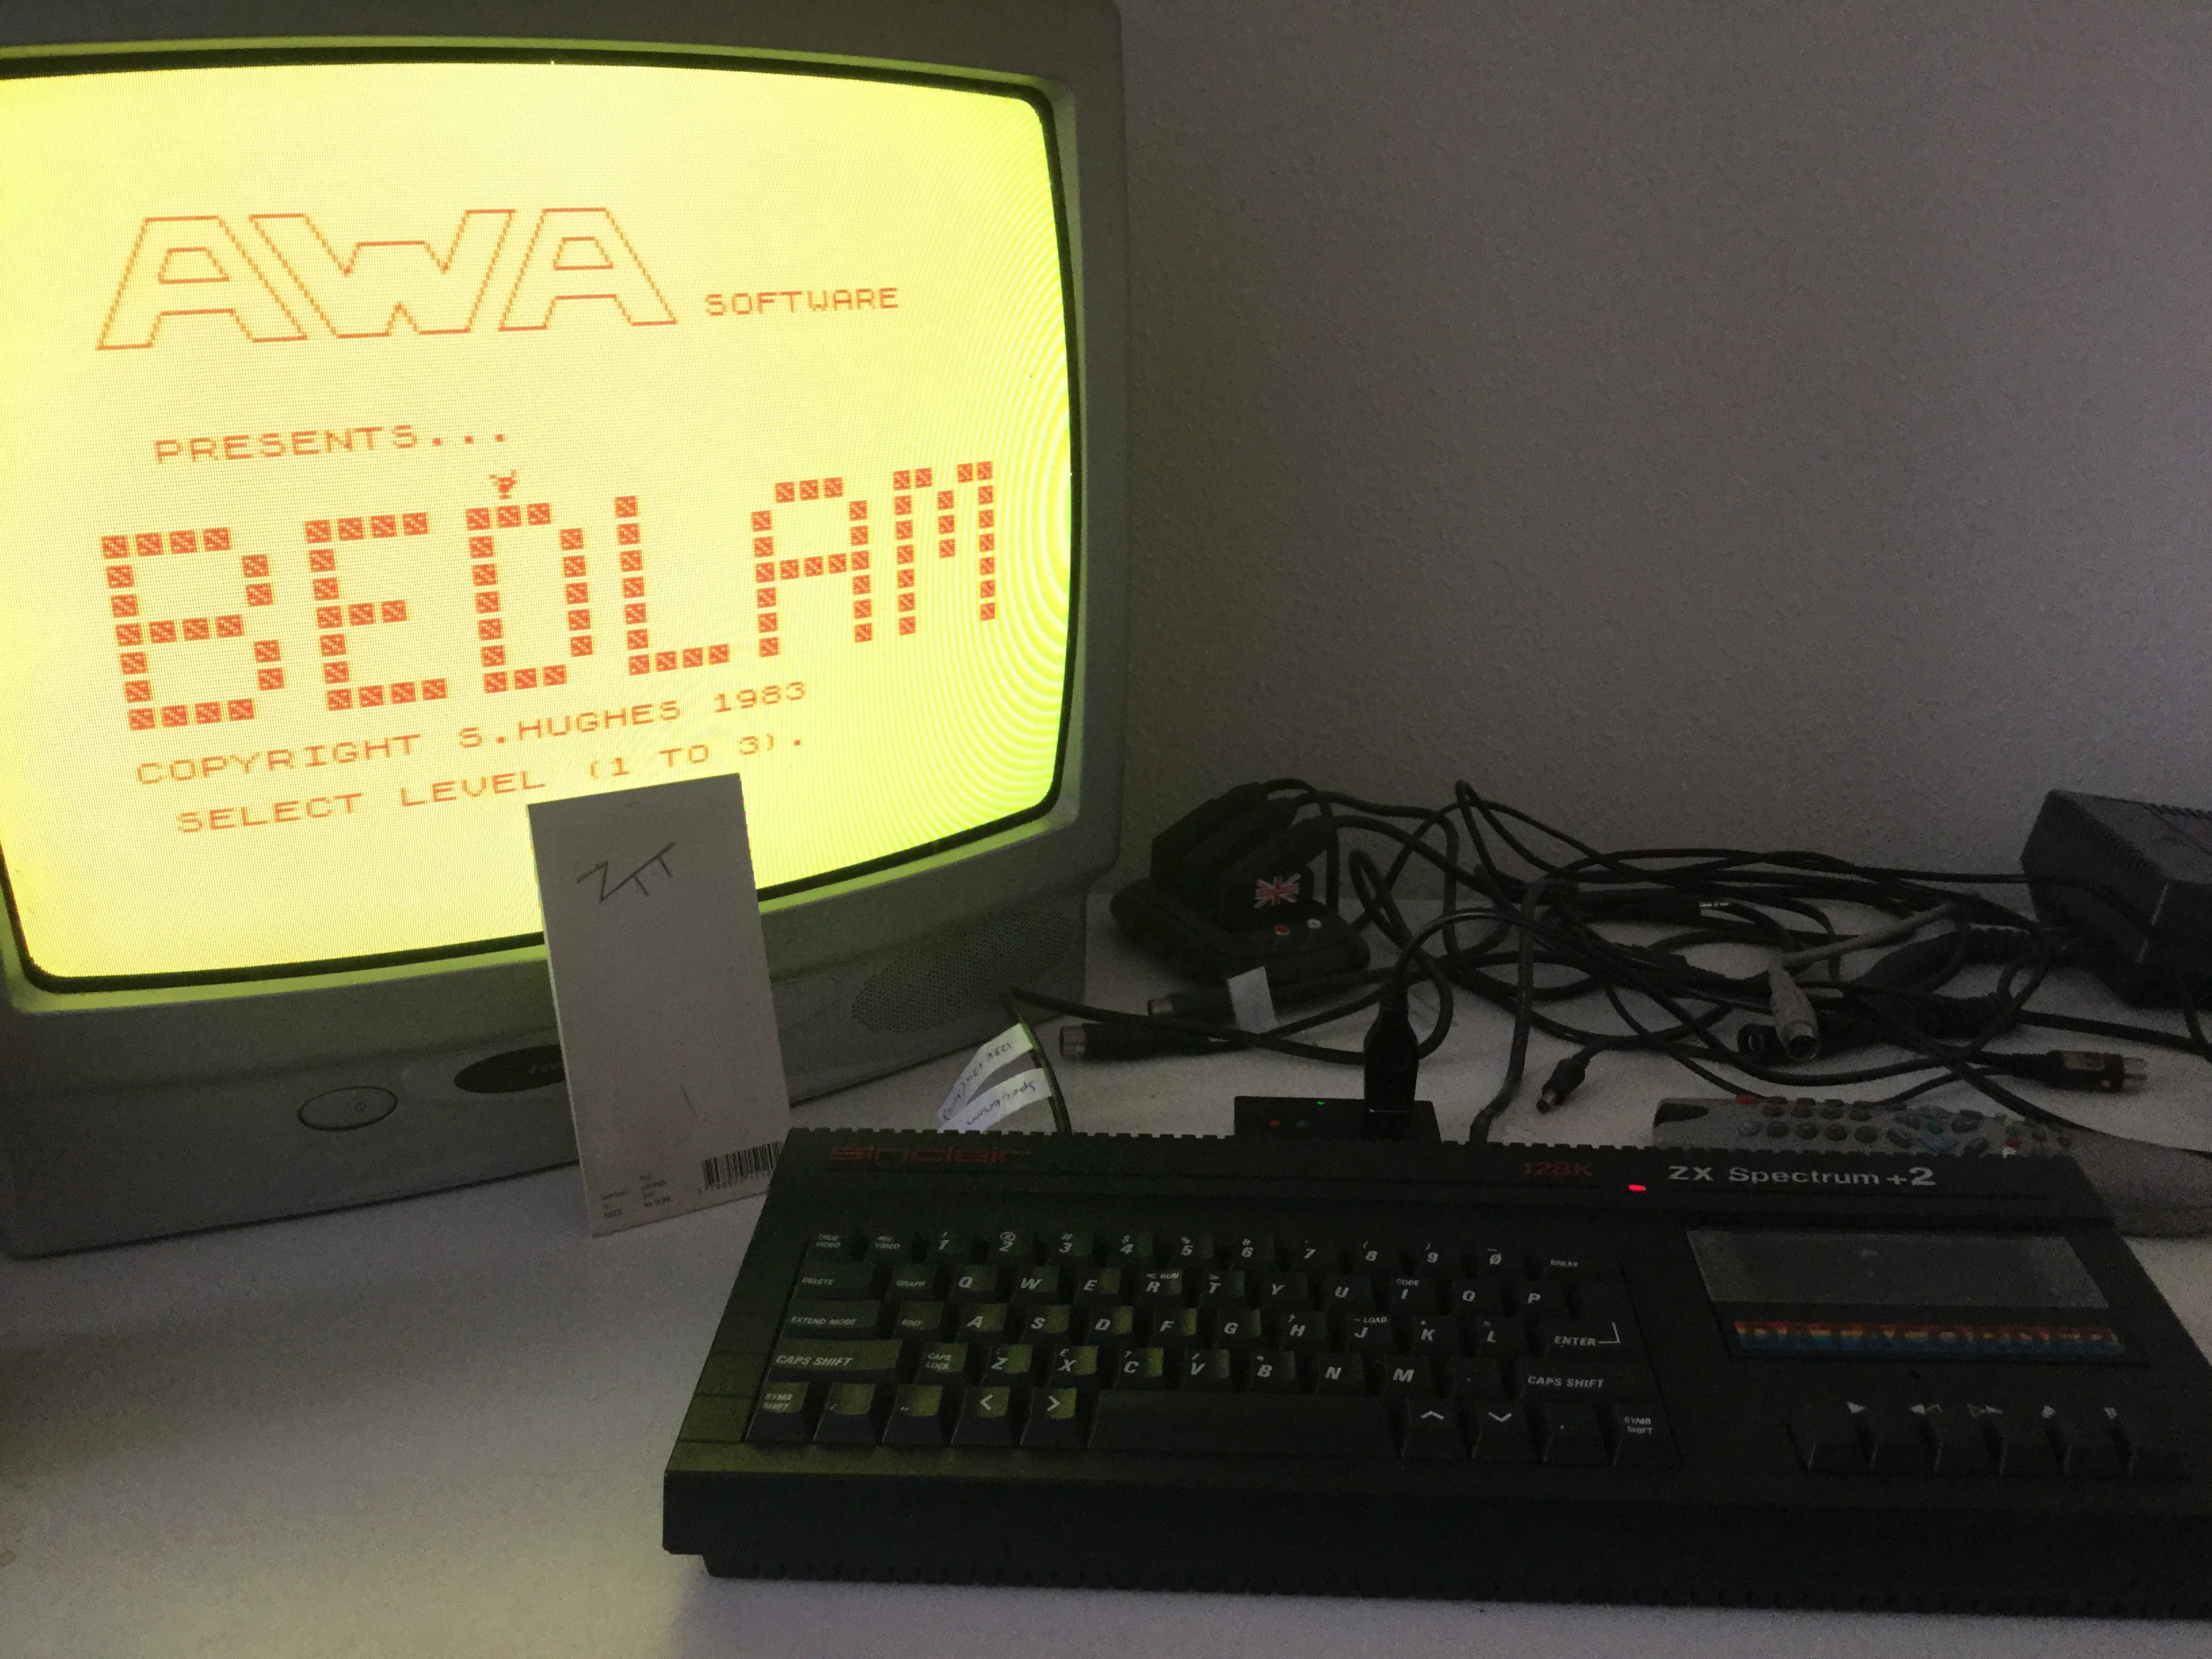 Frankie: Bedlam [AWA Software / MC Lothlorien] [Level 2] (ZX Spectrum) 410 points on 2018-03-01 06:27:24